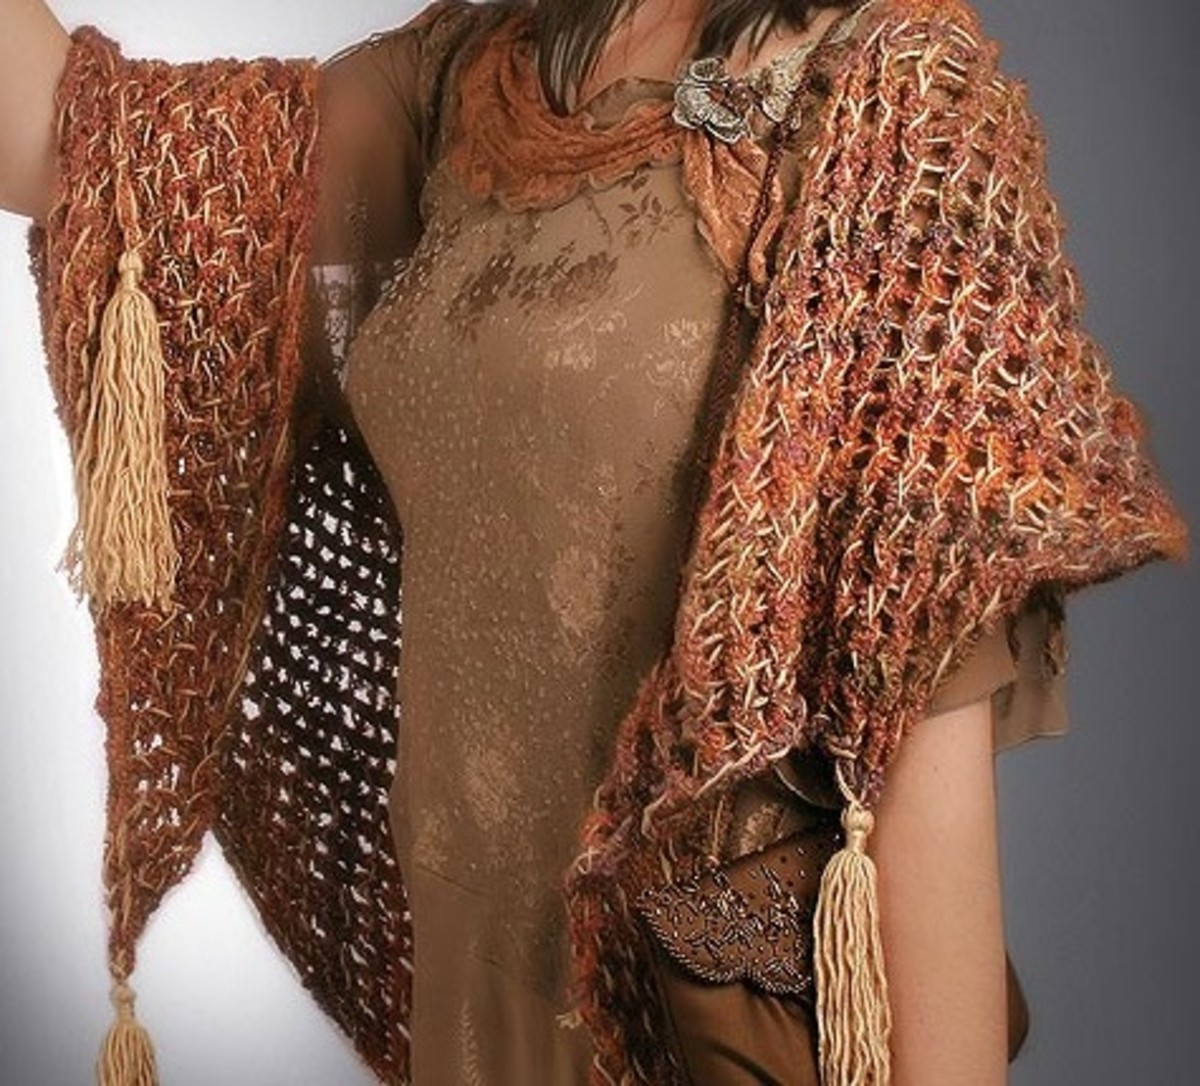 Knifty Knitter Patter for Shawl with Tassels for the Yellow, Round Loom